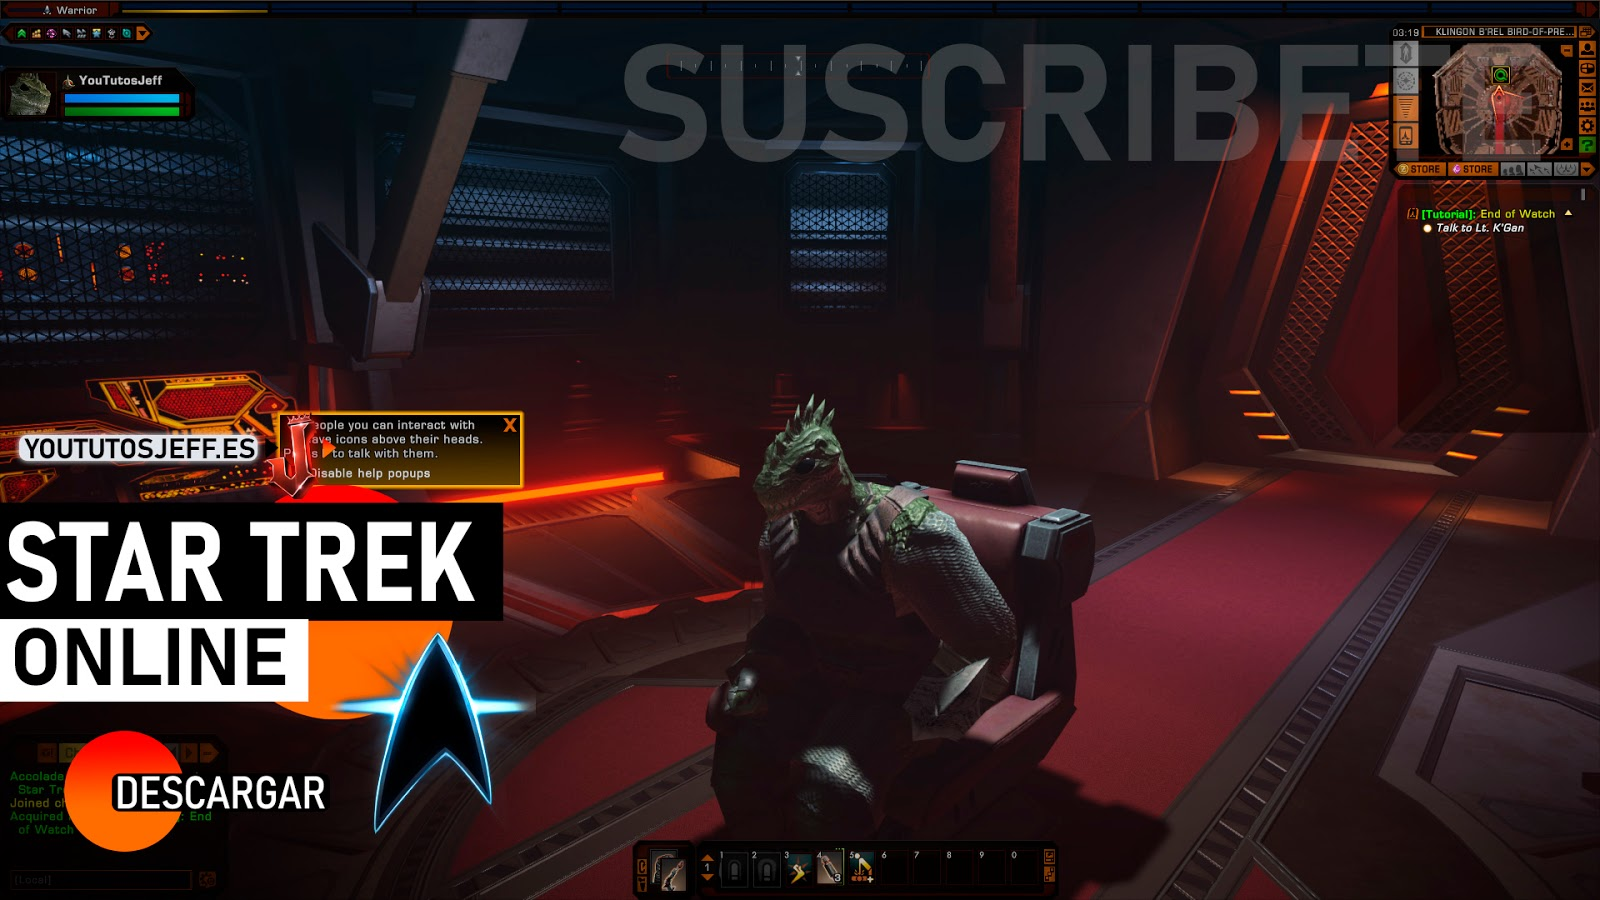 Descargar Star Trek Online Gratis para PC